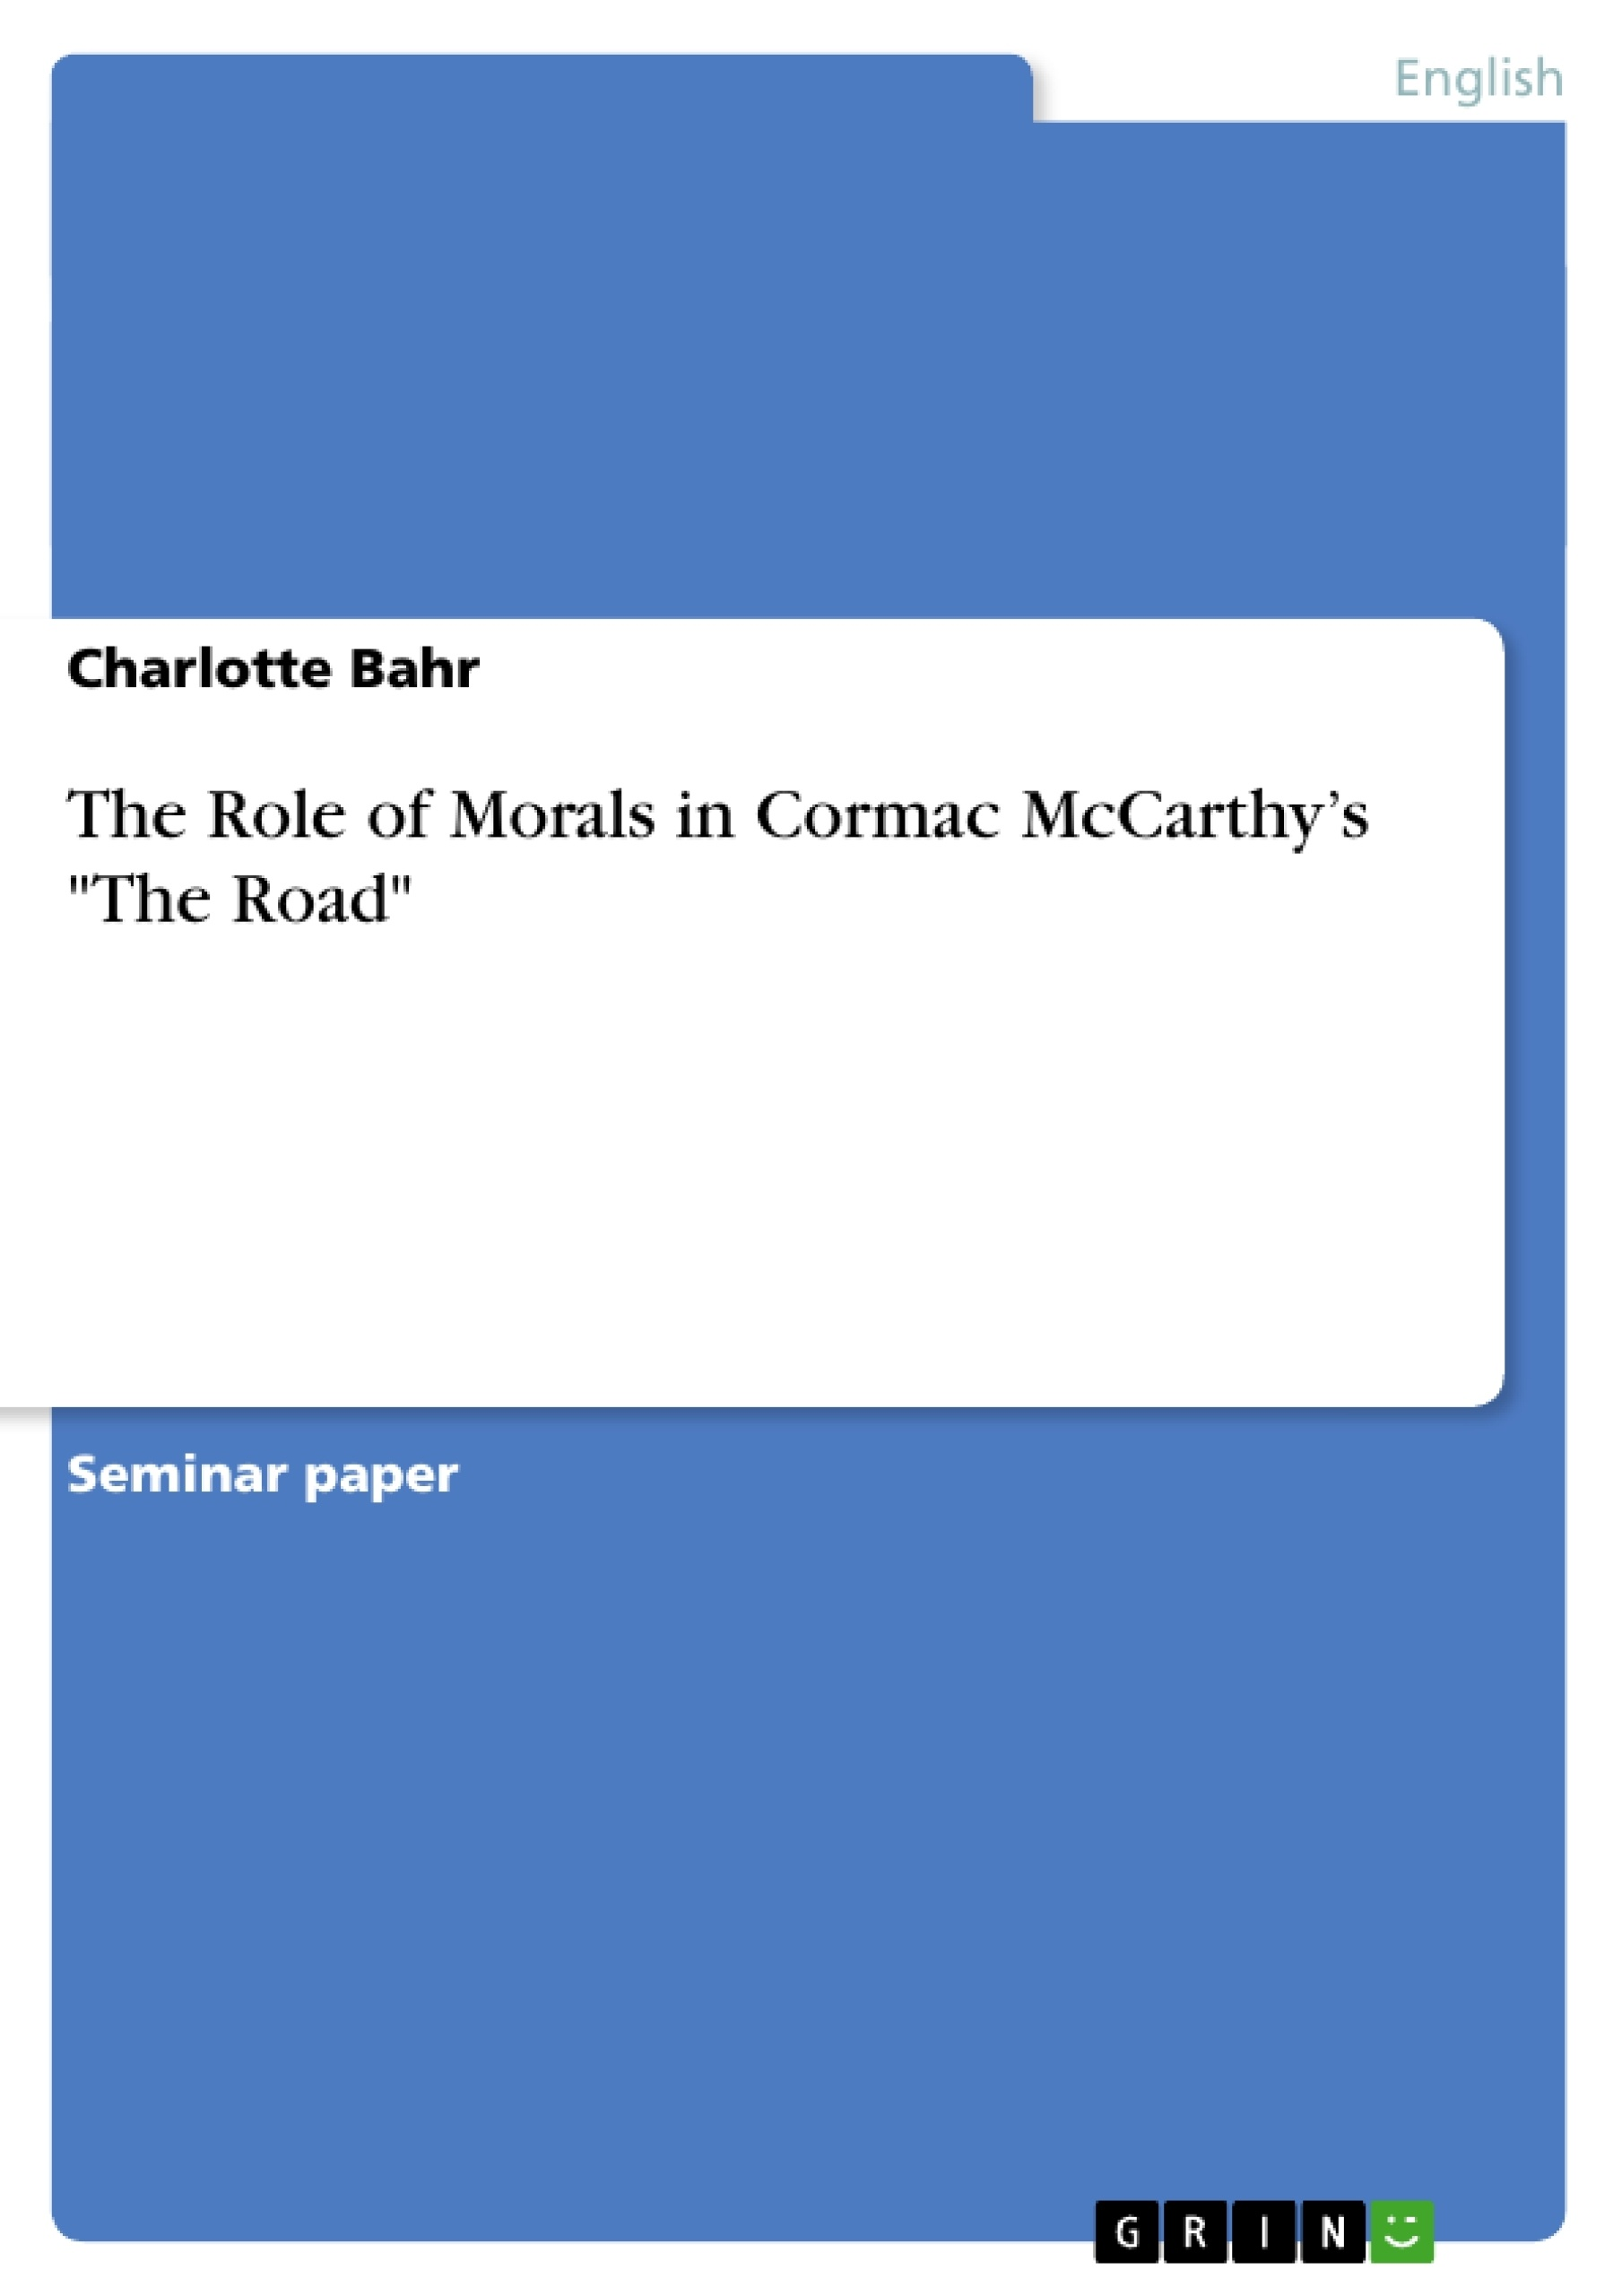 the role of morals in cormac mccarthy s the road publish your  upload your own papers earn money and win an iphone x